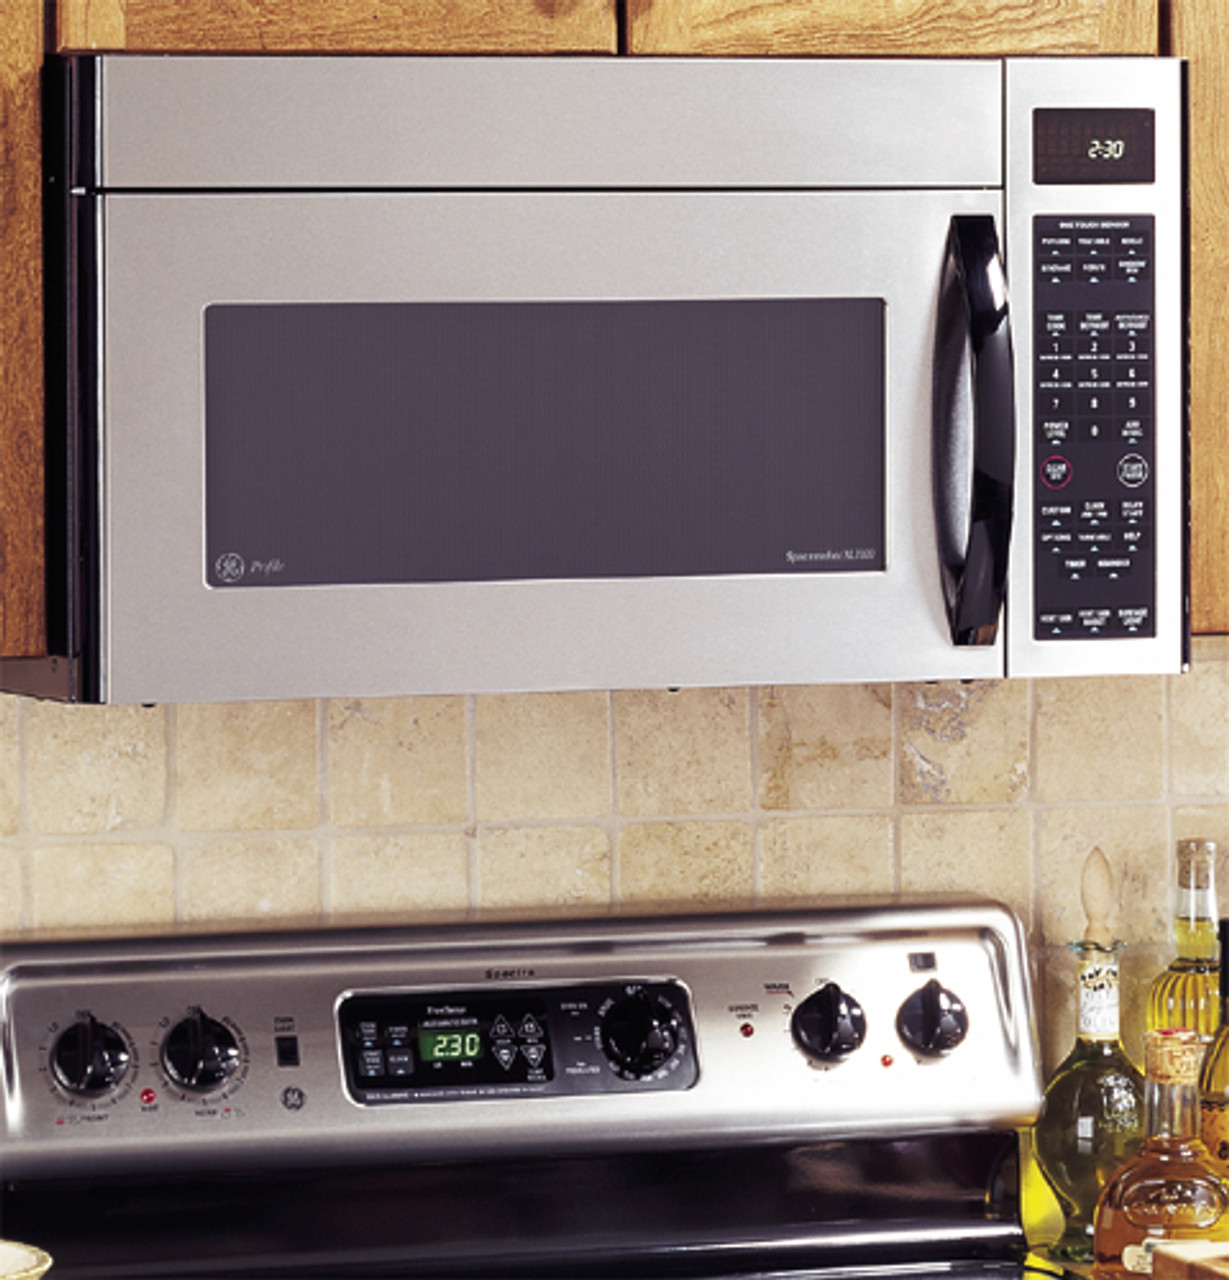 ge profile spacemaker xl1800 microwave oven with recirculating venting 1100 watts jvm1861sf